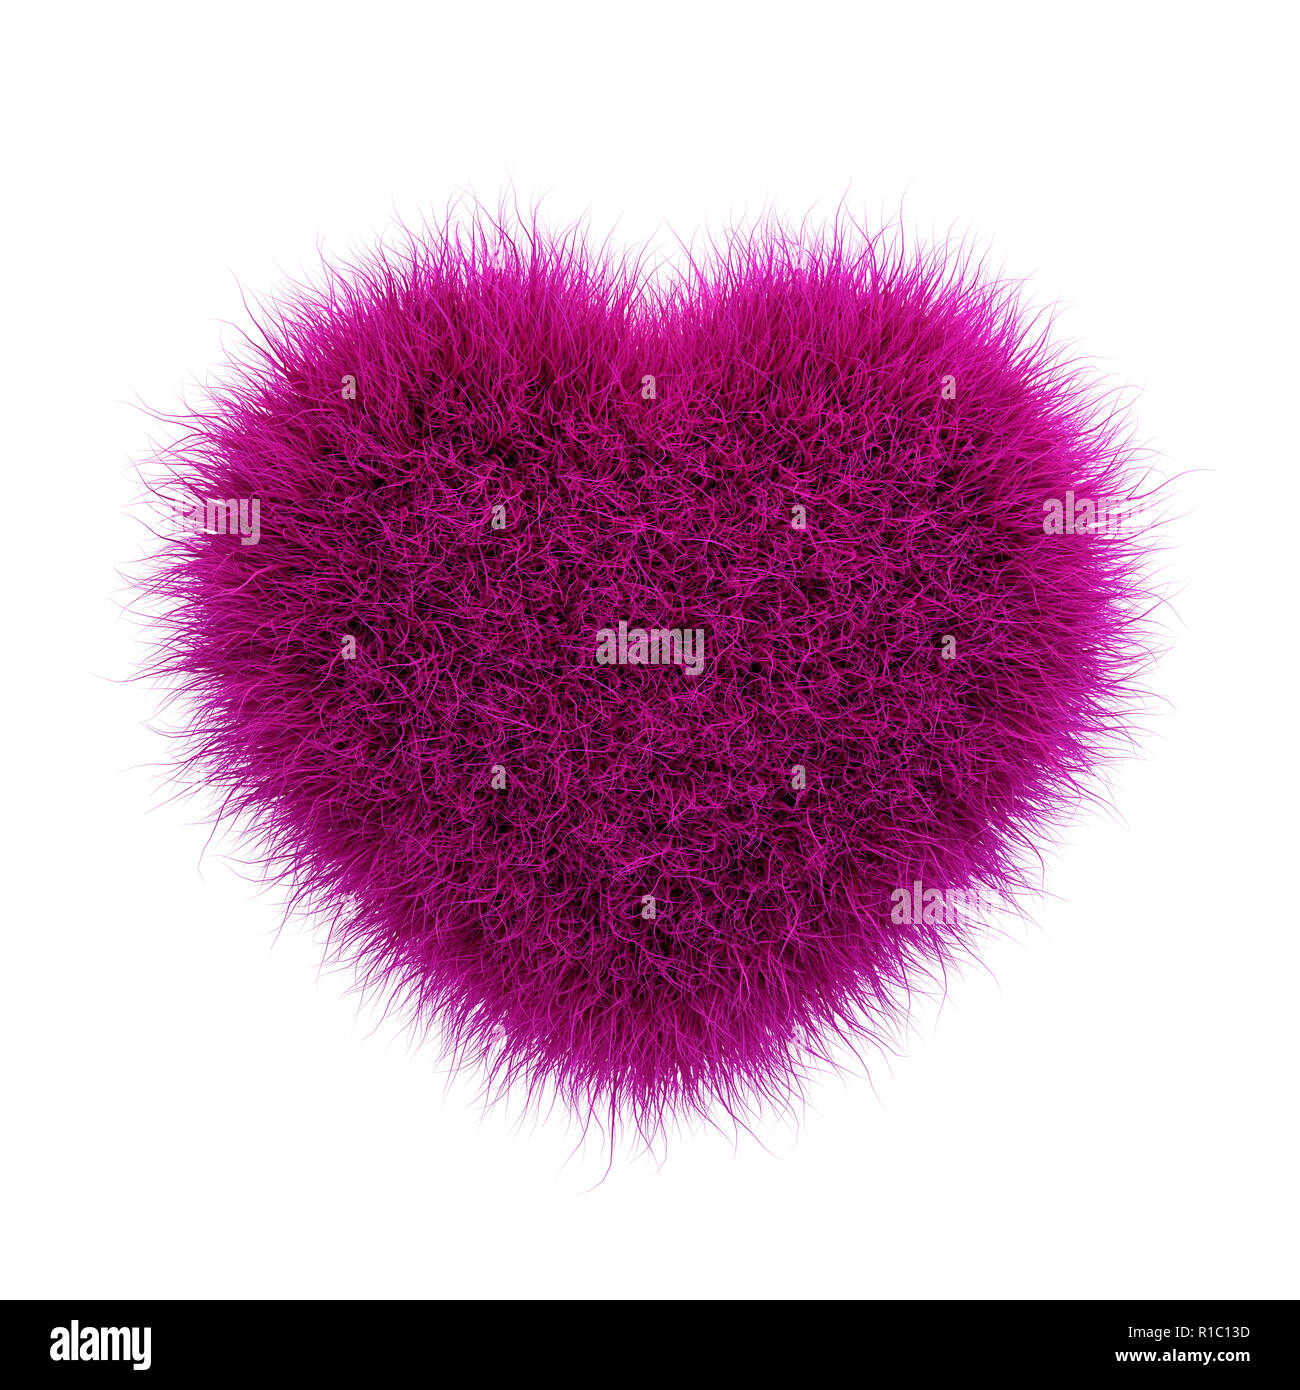 Cute fluffy pink heart shape on white. 3D rendering - Stock Image